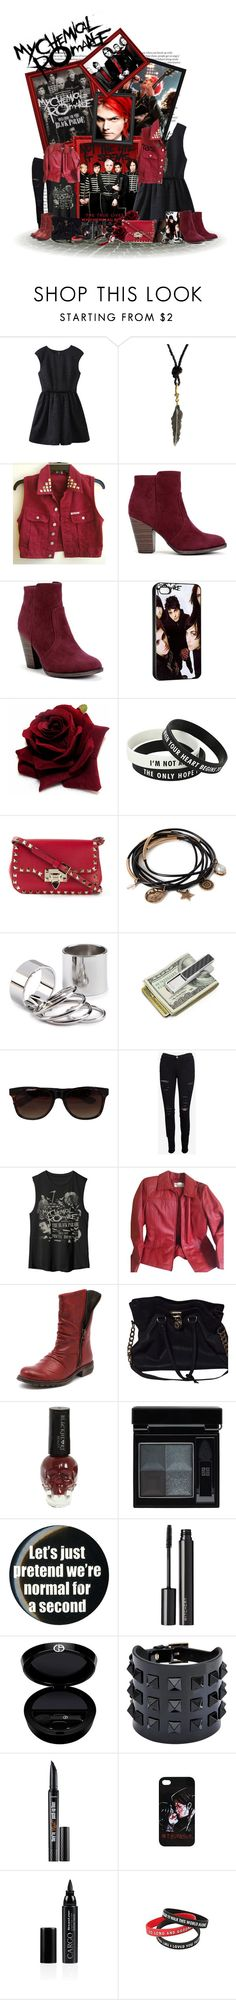 """""""My Chemical Romance I"""" by broken-killjoy ❤ liked on Polyvore featuring ASOS, GUESS, Valentino, Forever 21, M-Clip, Vans, Frame Denim, Worthington, Eos and Michael Kors"""